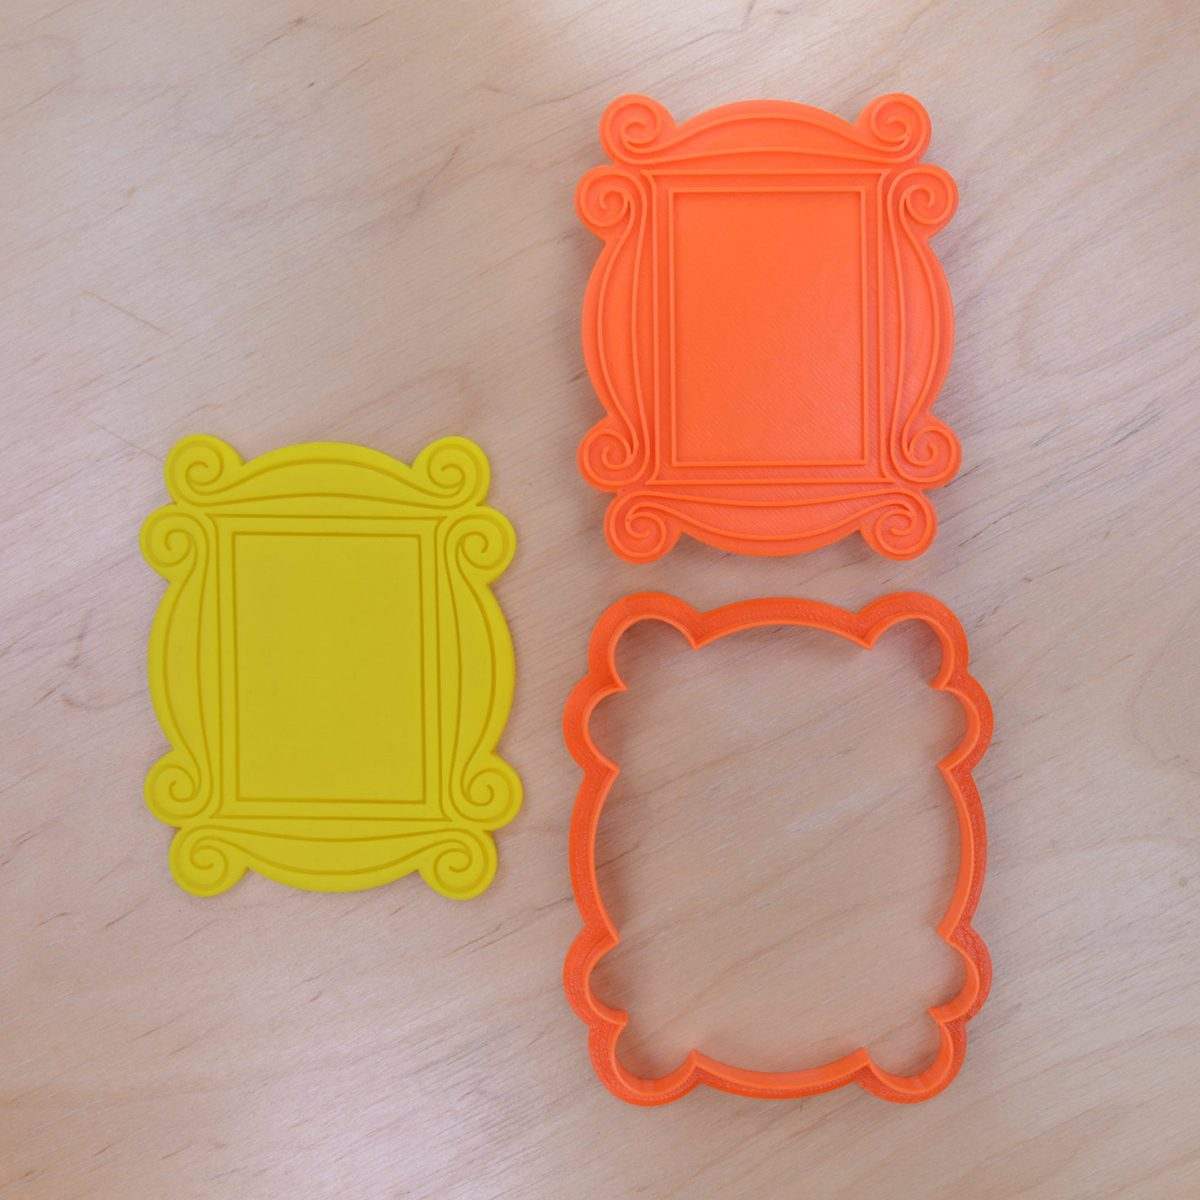 Monica's Peephole Door Frame Cookie Cutter and Stamp Set